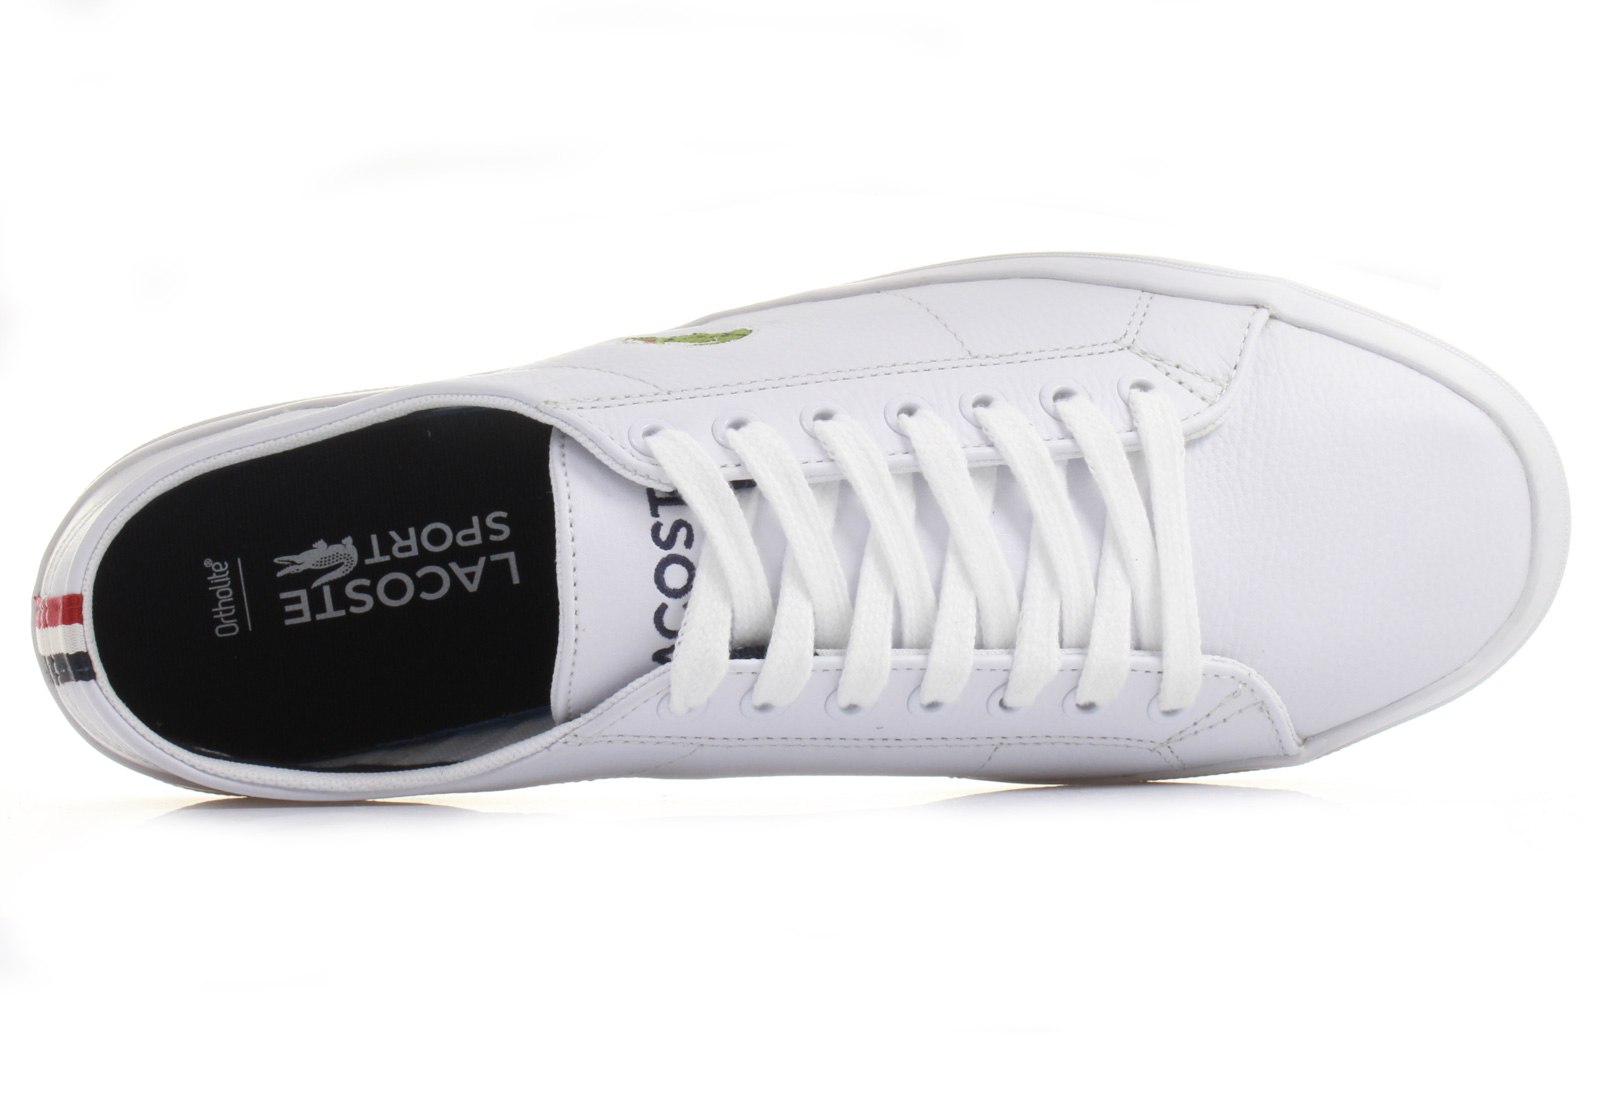 2696728b2841 Lacoste Cipő - Marcel Chunky - 142spm3021-21g - Office Shoes ...